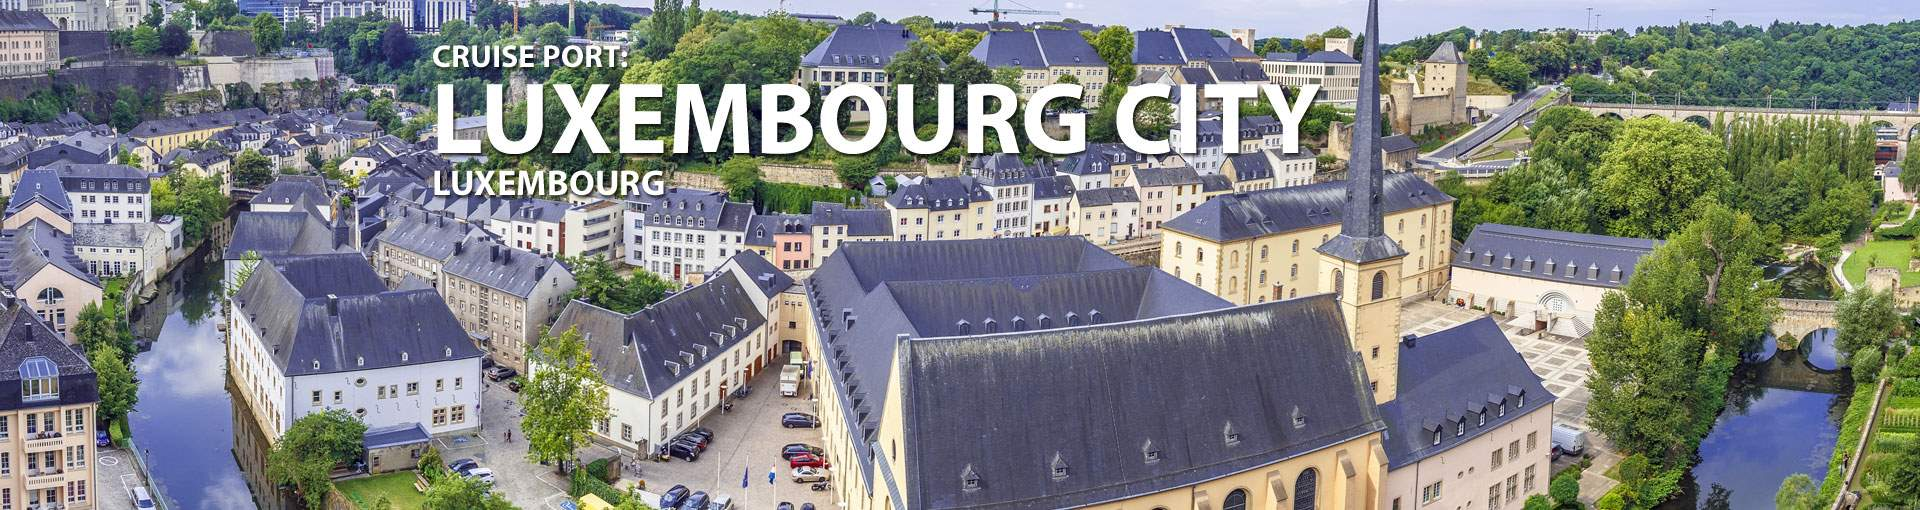 Cruises to Luxembourg City, Luxembourg